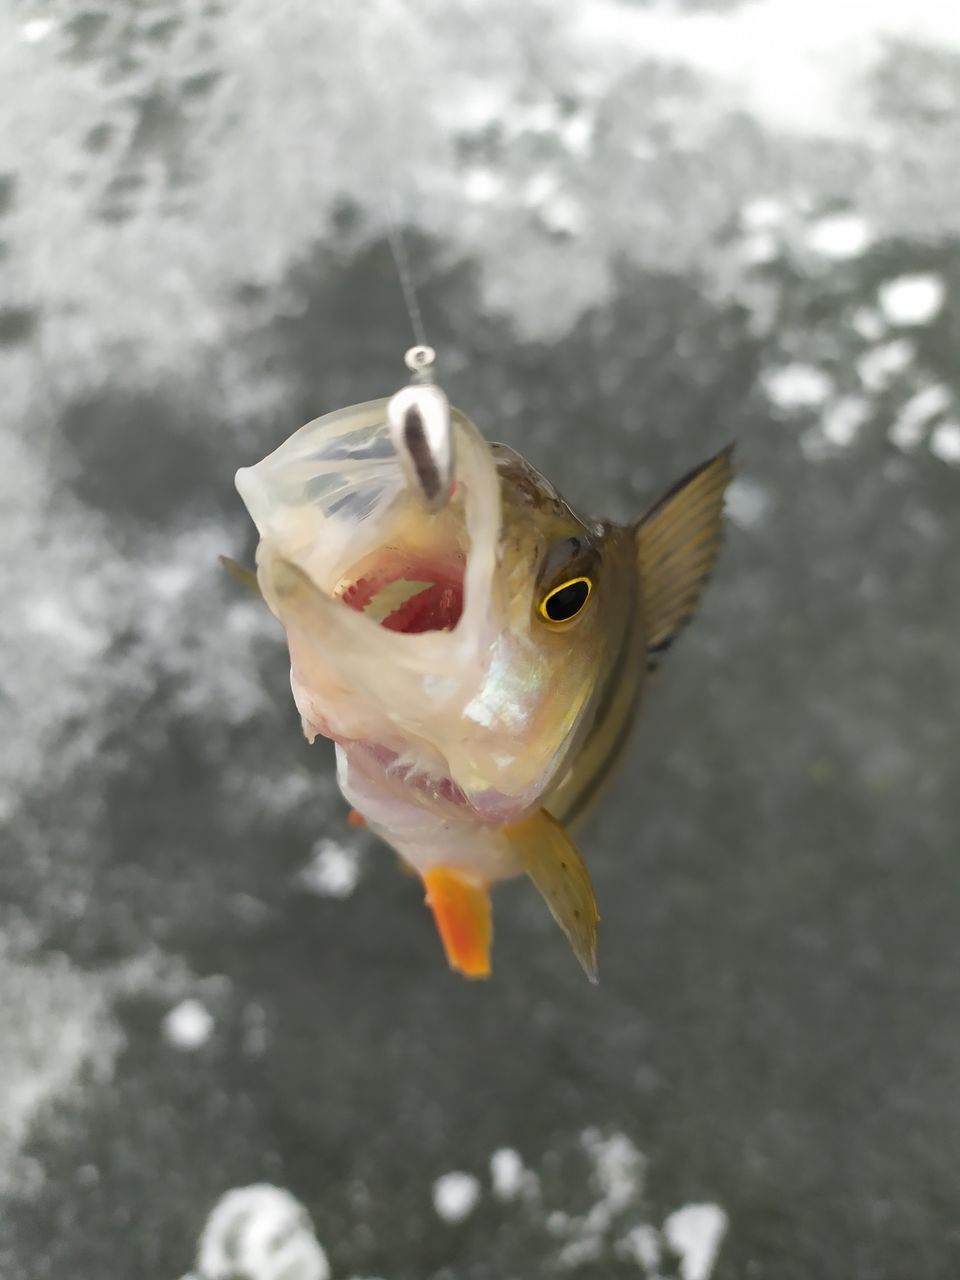 HIGH ANGLE VIEW OF FISH IN WATER